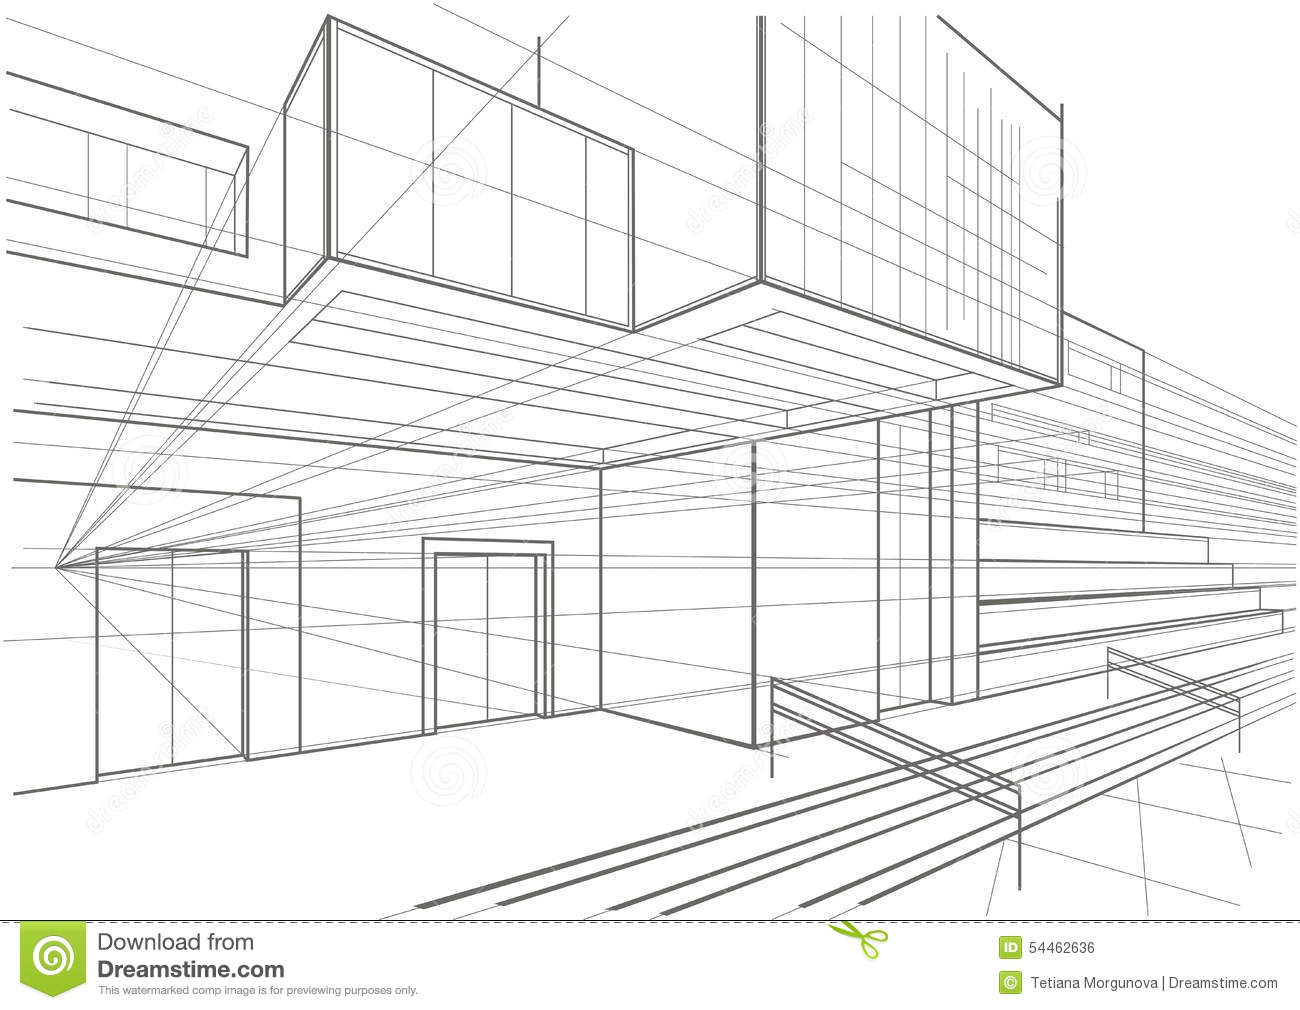 Architectural Sketch Of A Cubic Building Stock Vector